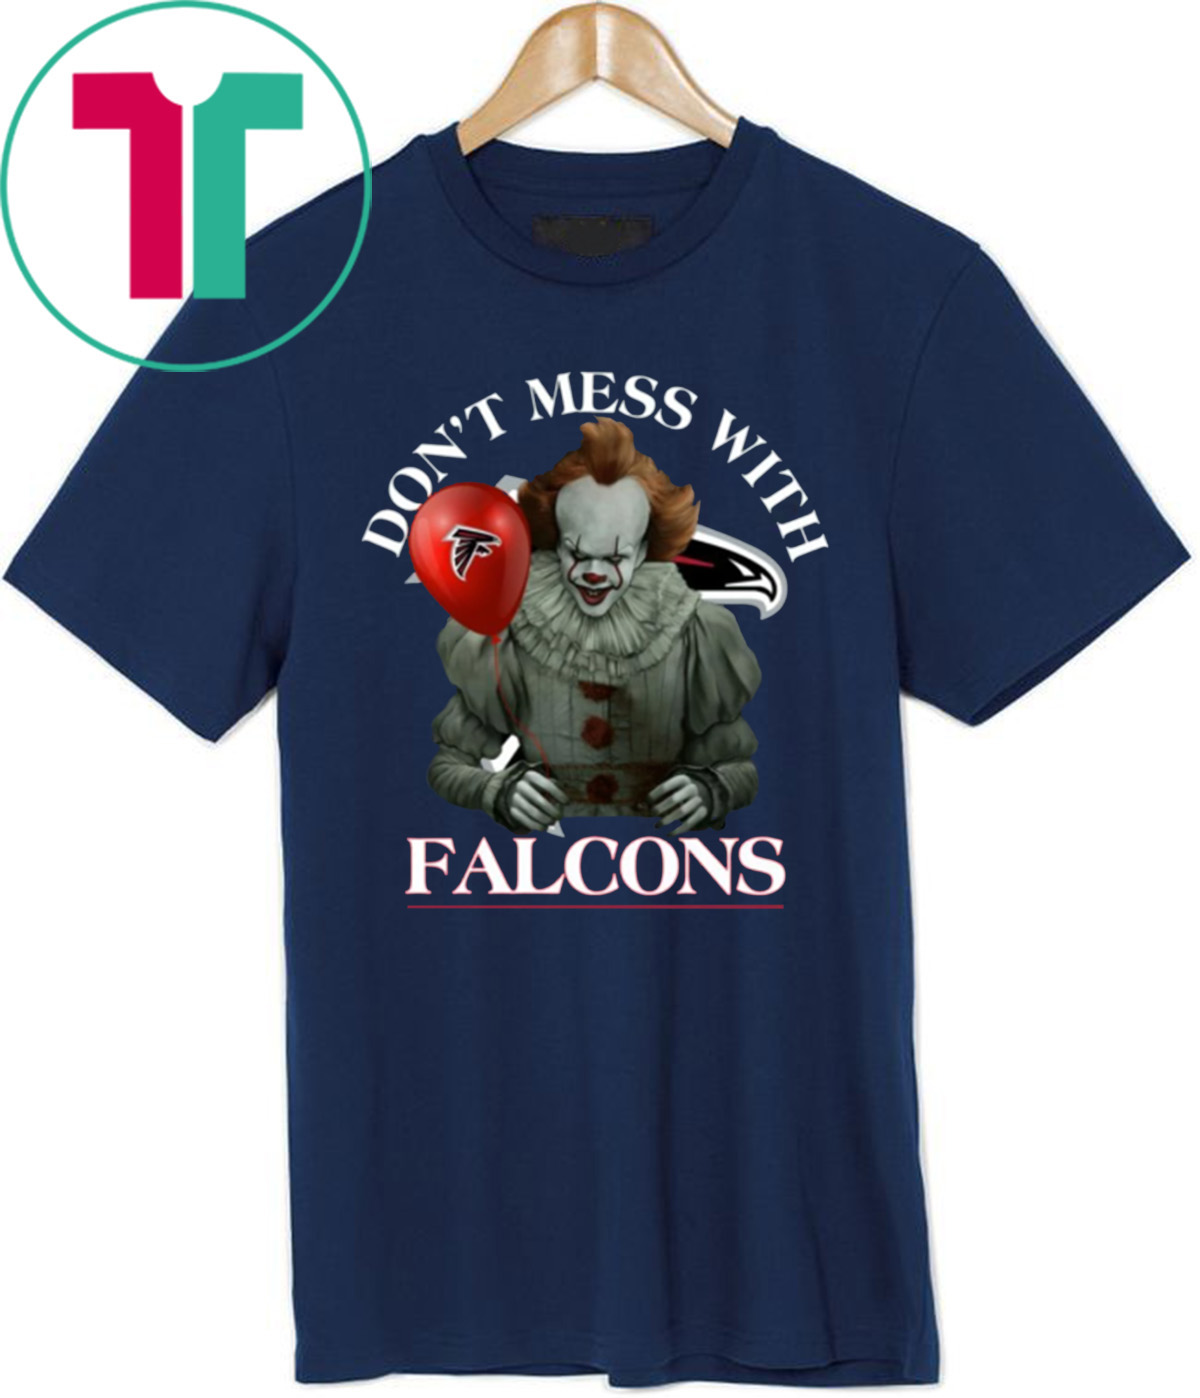 online retailer 59ff8 0de68 Don't Mess With Atlanta Falcons Pennywise T-shirt Cool Gift For Fans Tee